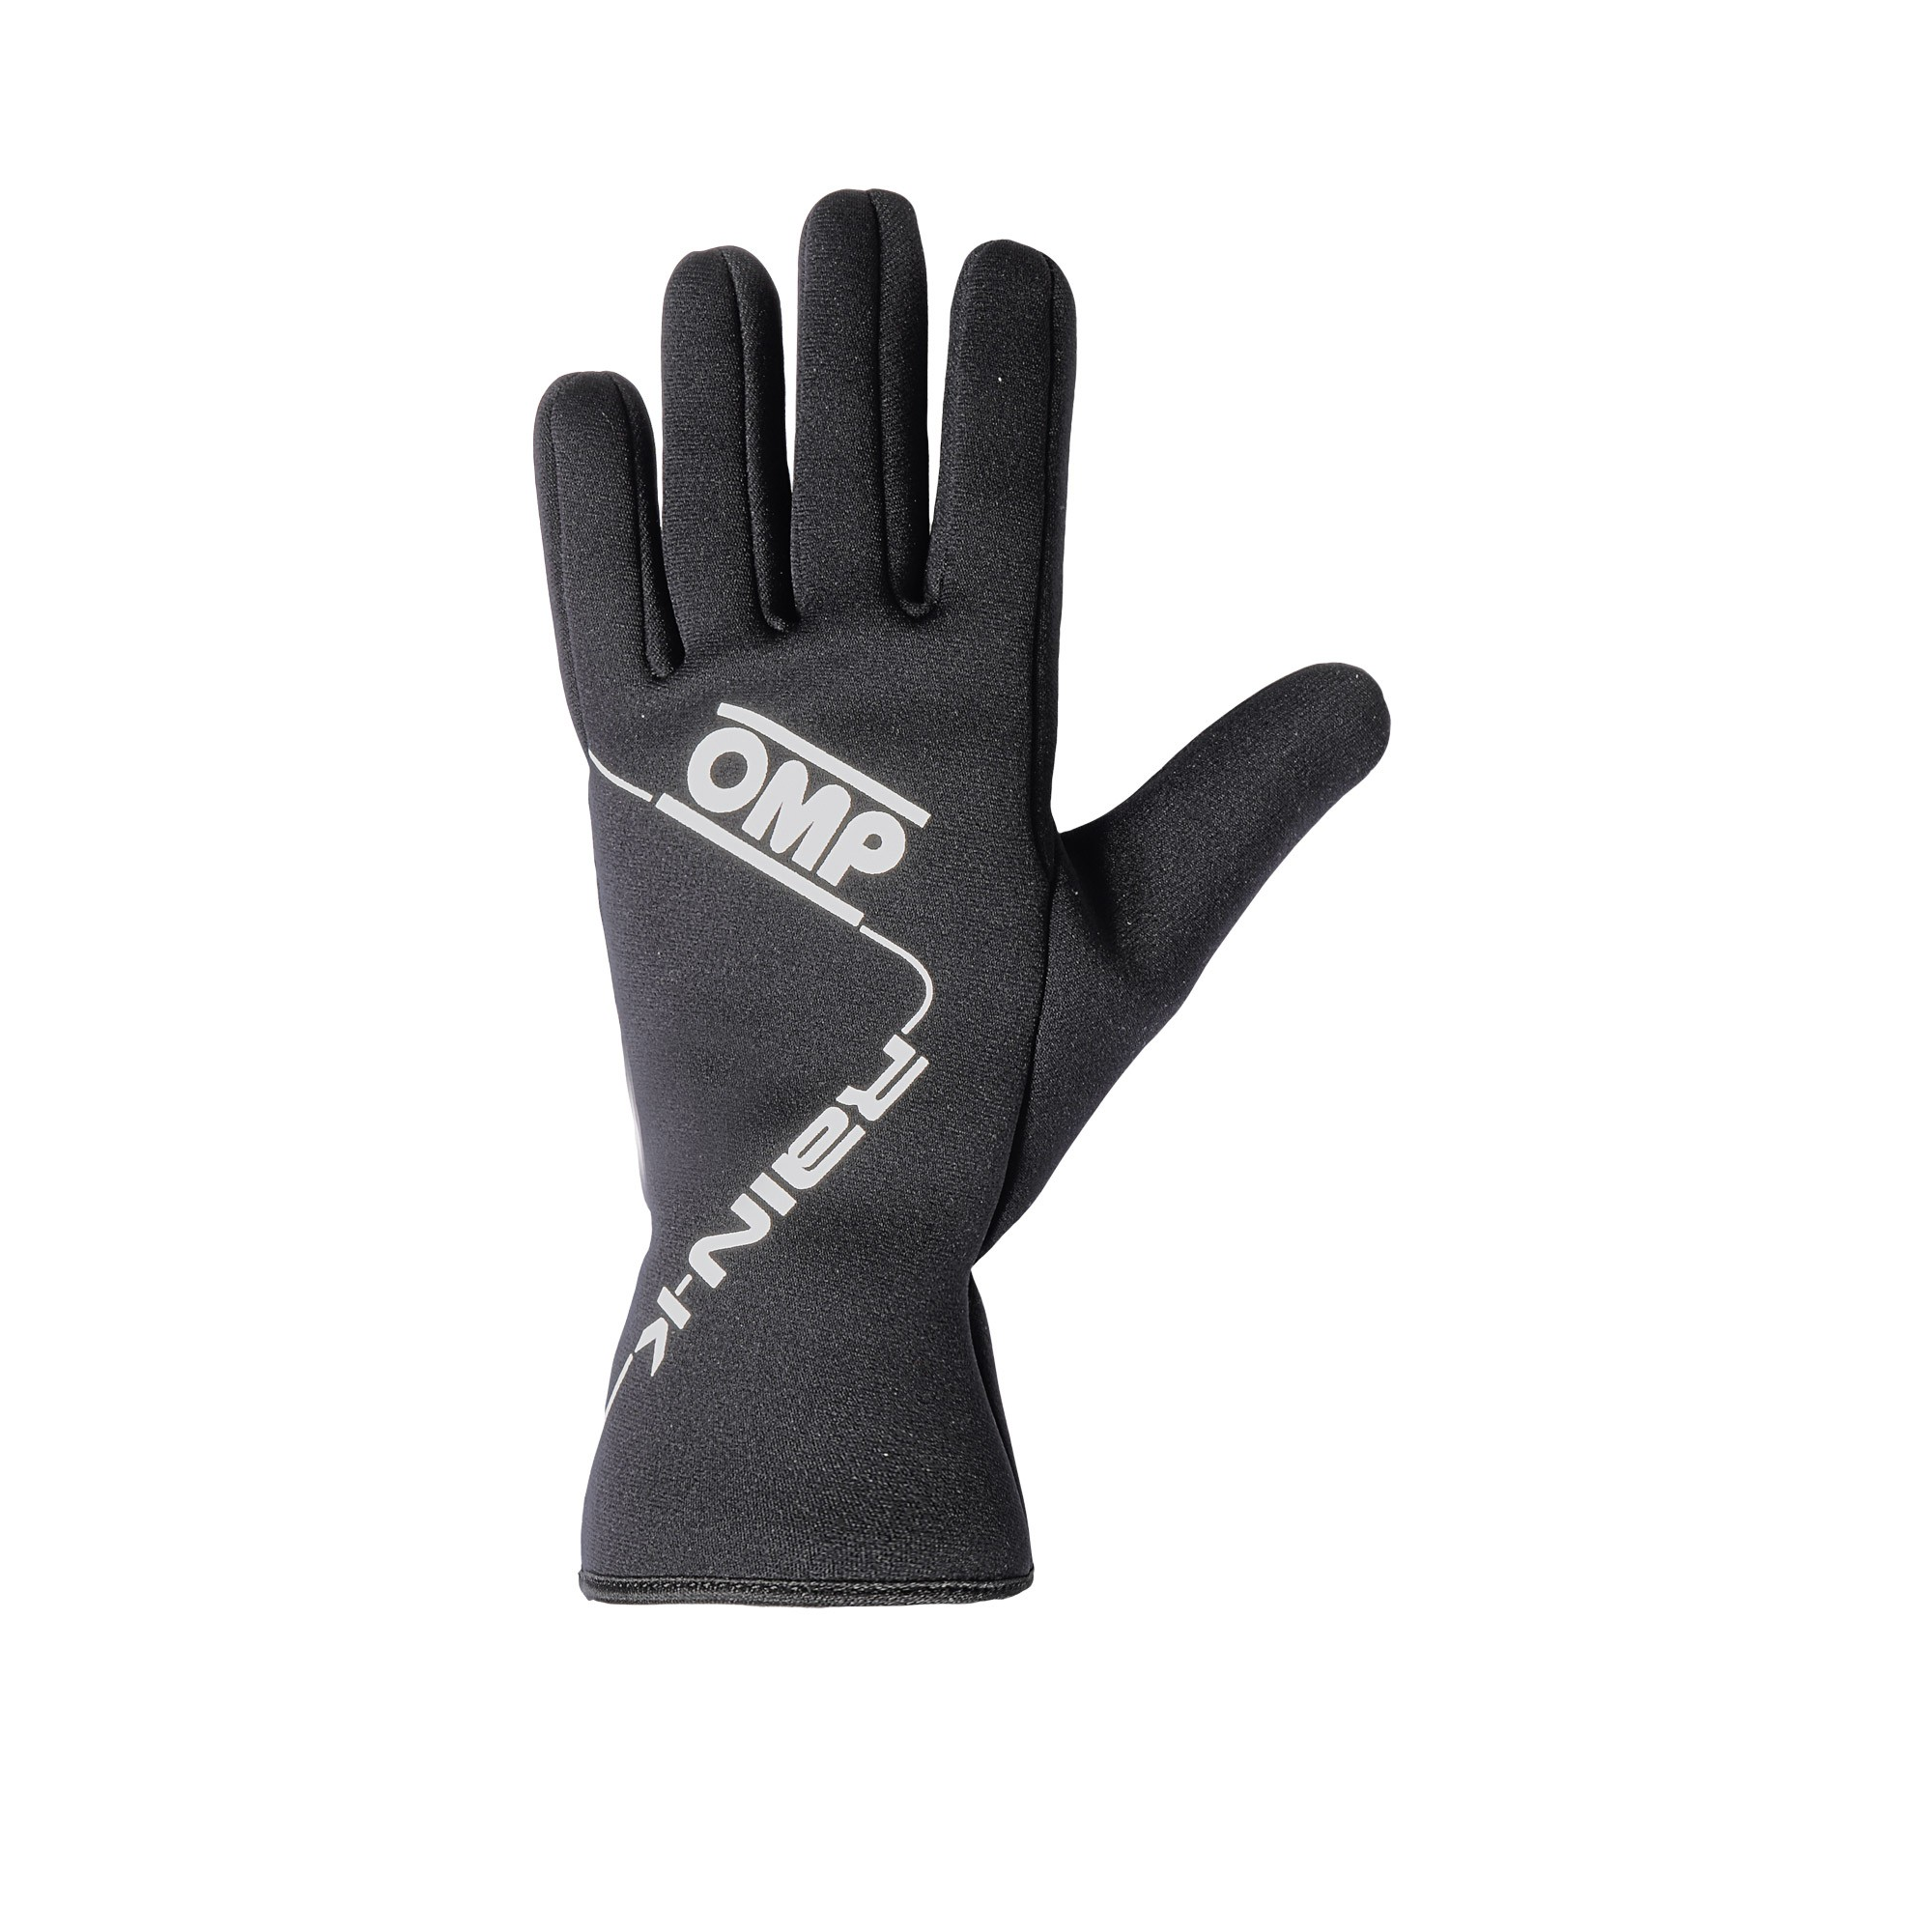 KK02739 OMP RAIN K GLOVES for OUTDOOR KARTING NEOPRENE RAINPROOF in 4 SIZES NEW